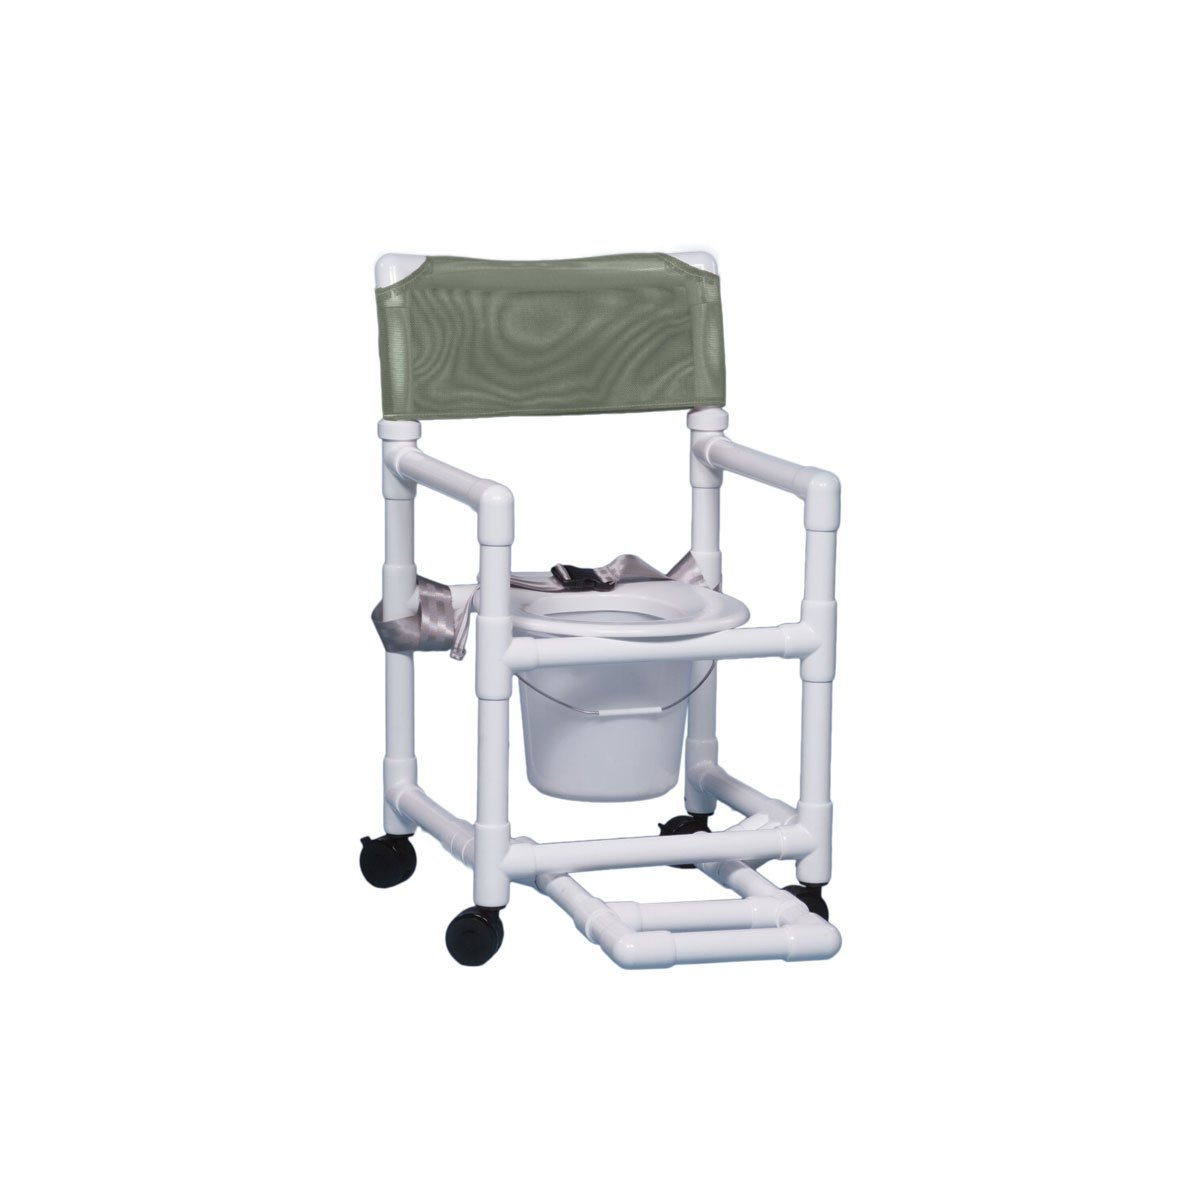 Shower Chair Commode with Footrest & Seat Belt 17'' Clearance-Autumn Fern